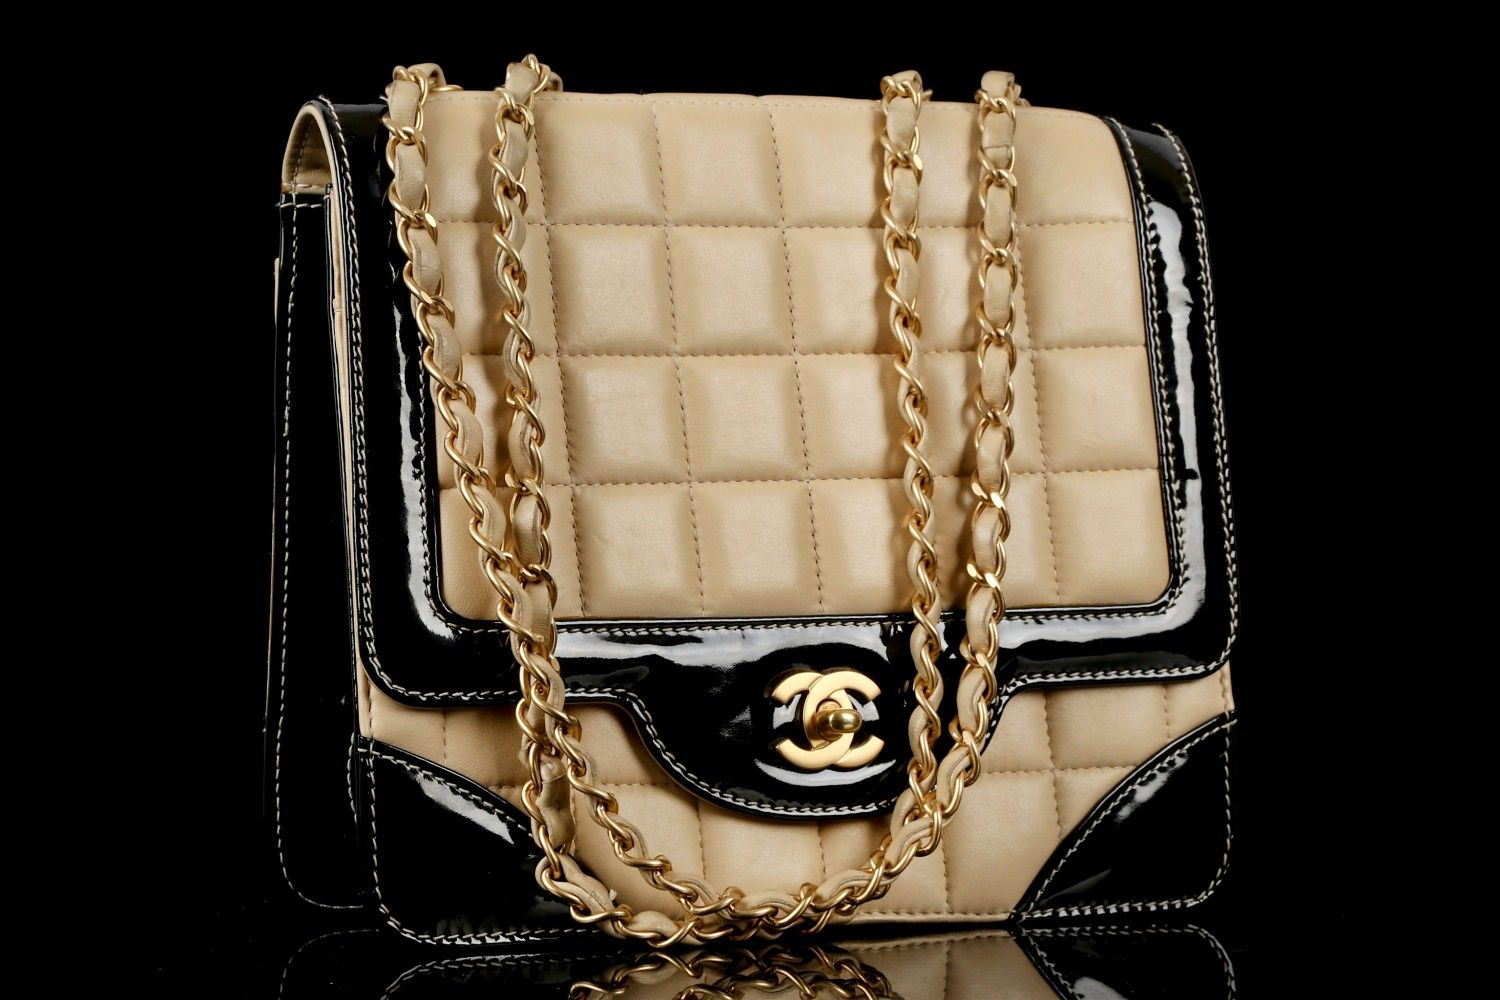 f3fabc6b39c1 CHANEL CHOCOLATE BAR FLAP SHOULDER BAG